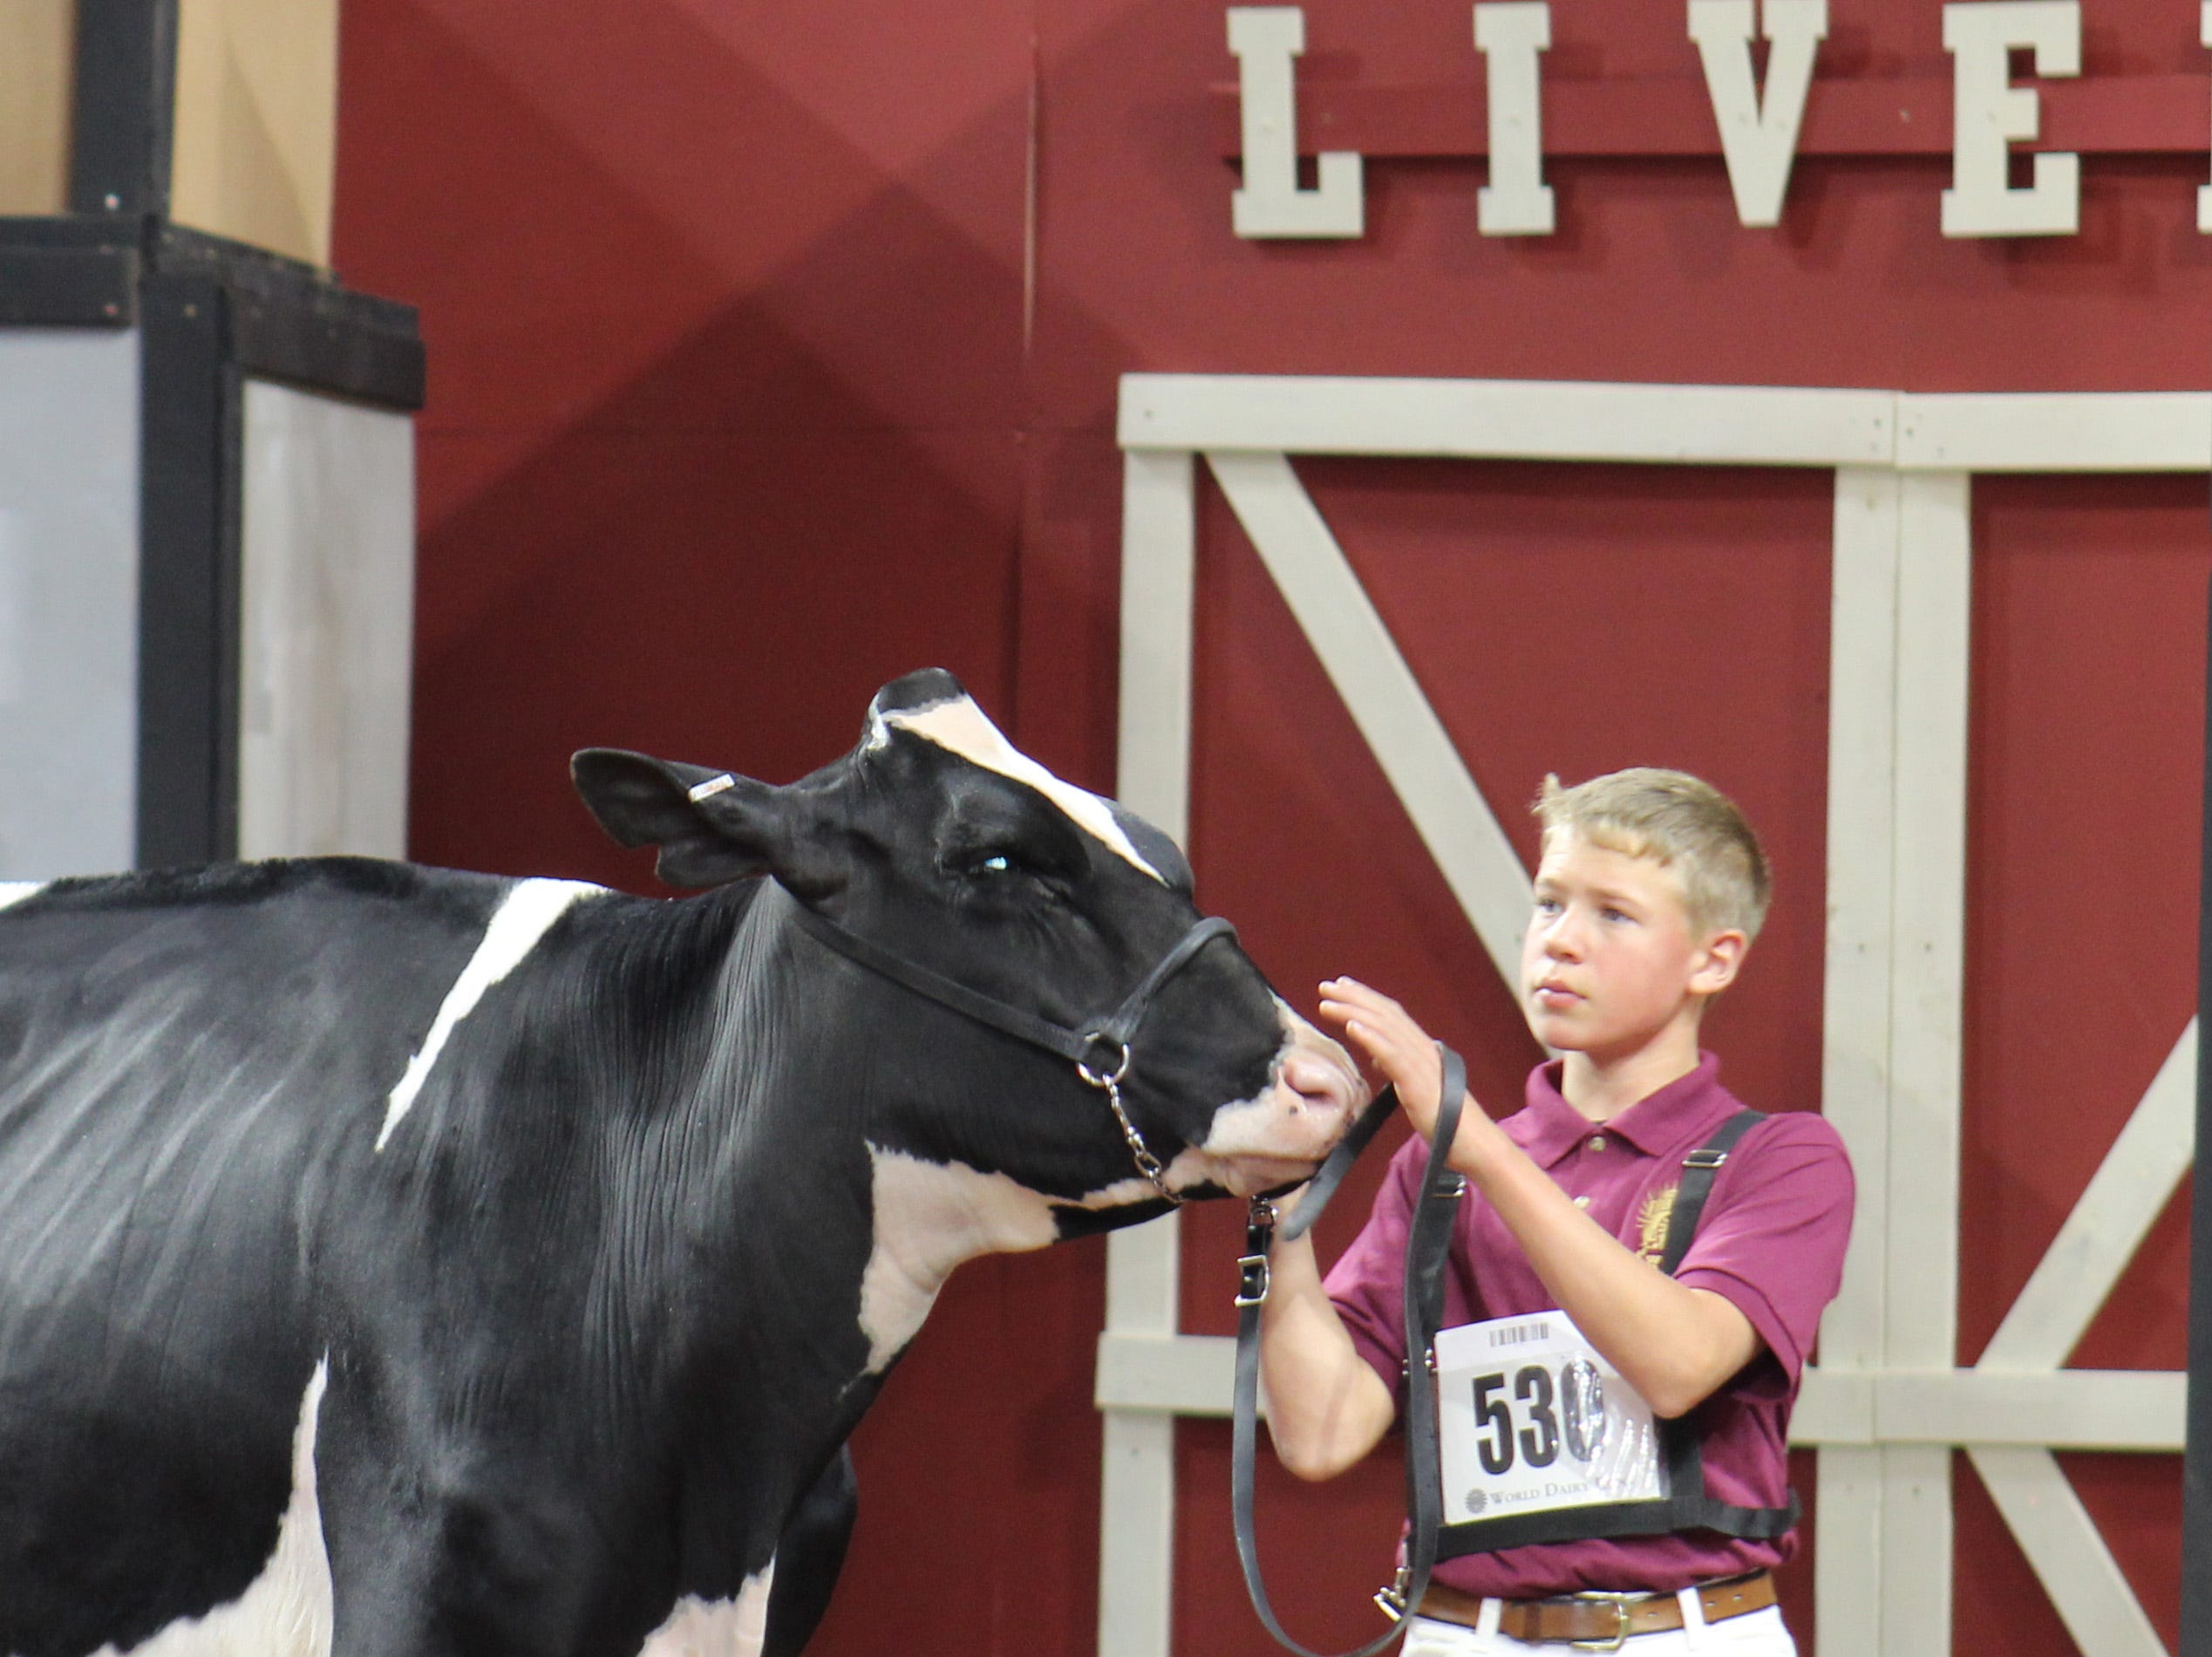 Junior exhibitors had the chance to compete on opening day of World Dairy Expo.